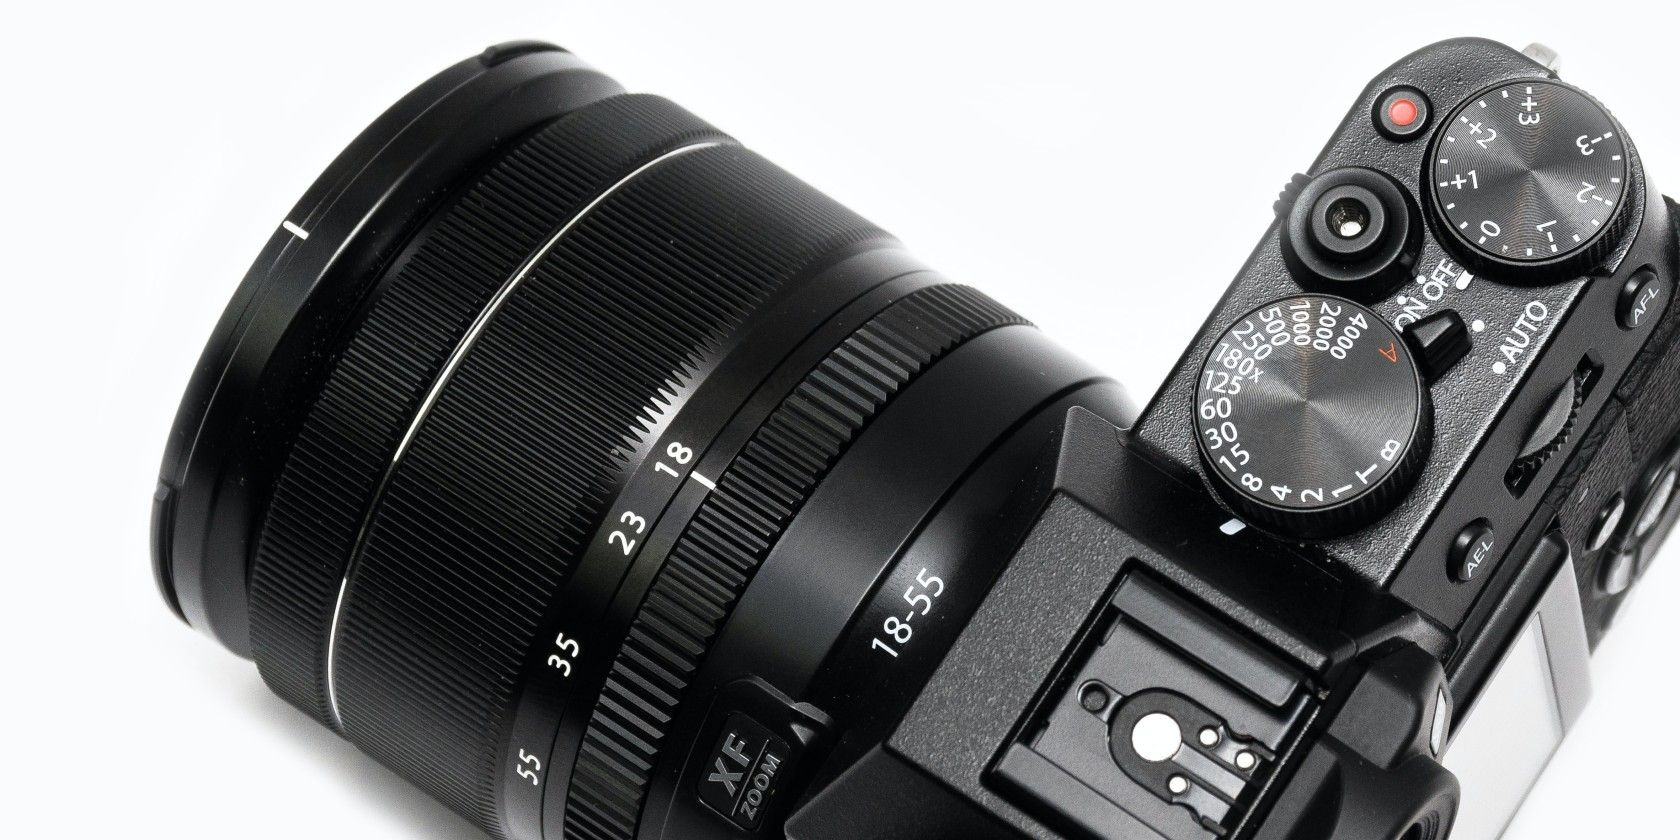 7 Things to Know When You Buy a Fujifilm Camera